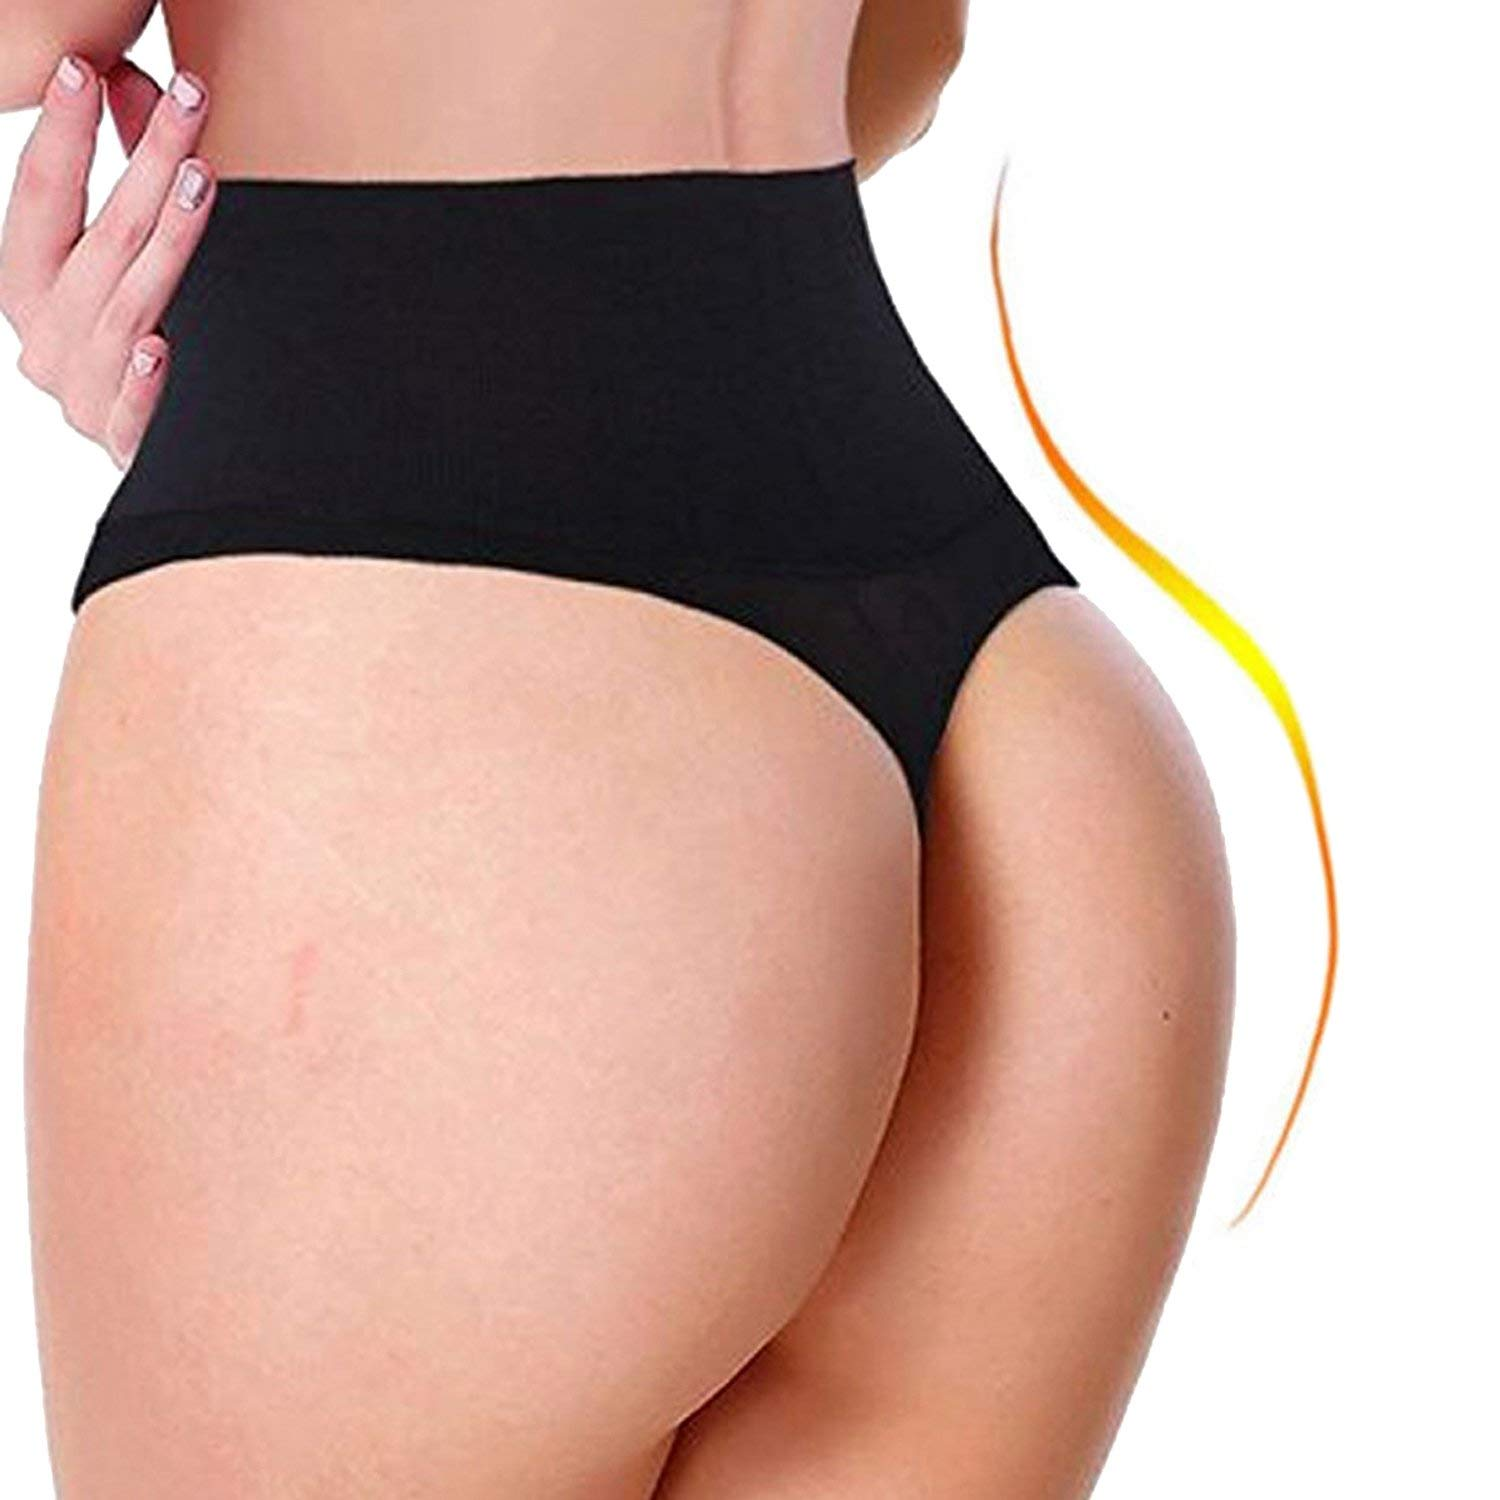 cec09dca04 Get Quotations · FLORATA Sexy Butt Lifter Body Shaper Underwear Slimming  Girdle Tummy Control Thong Pants